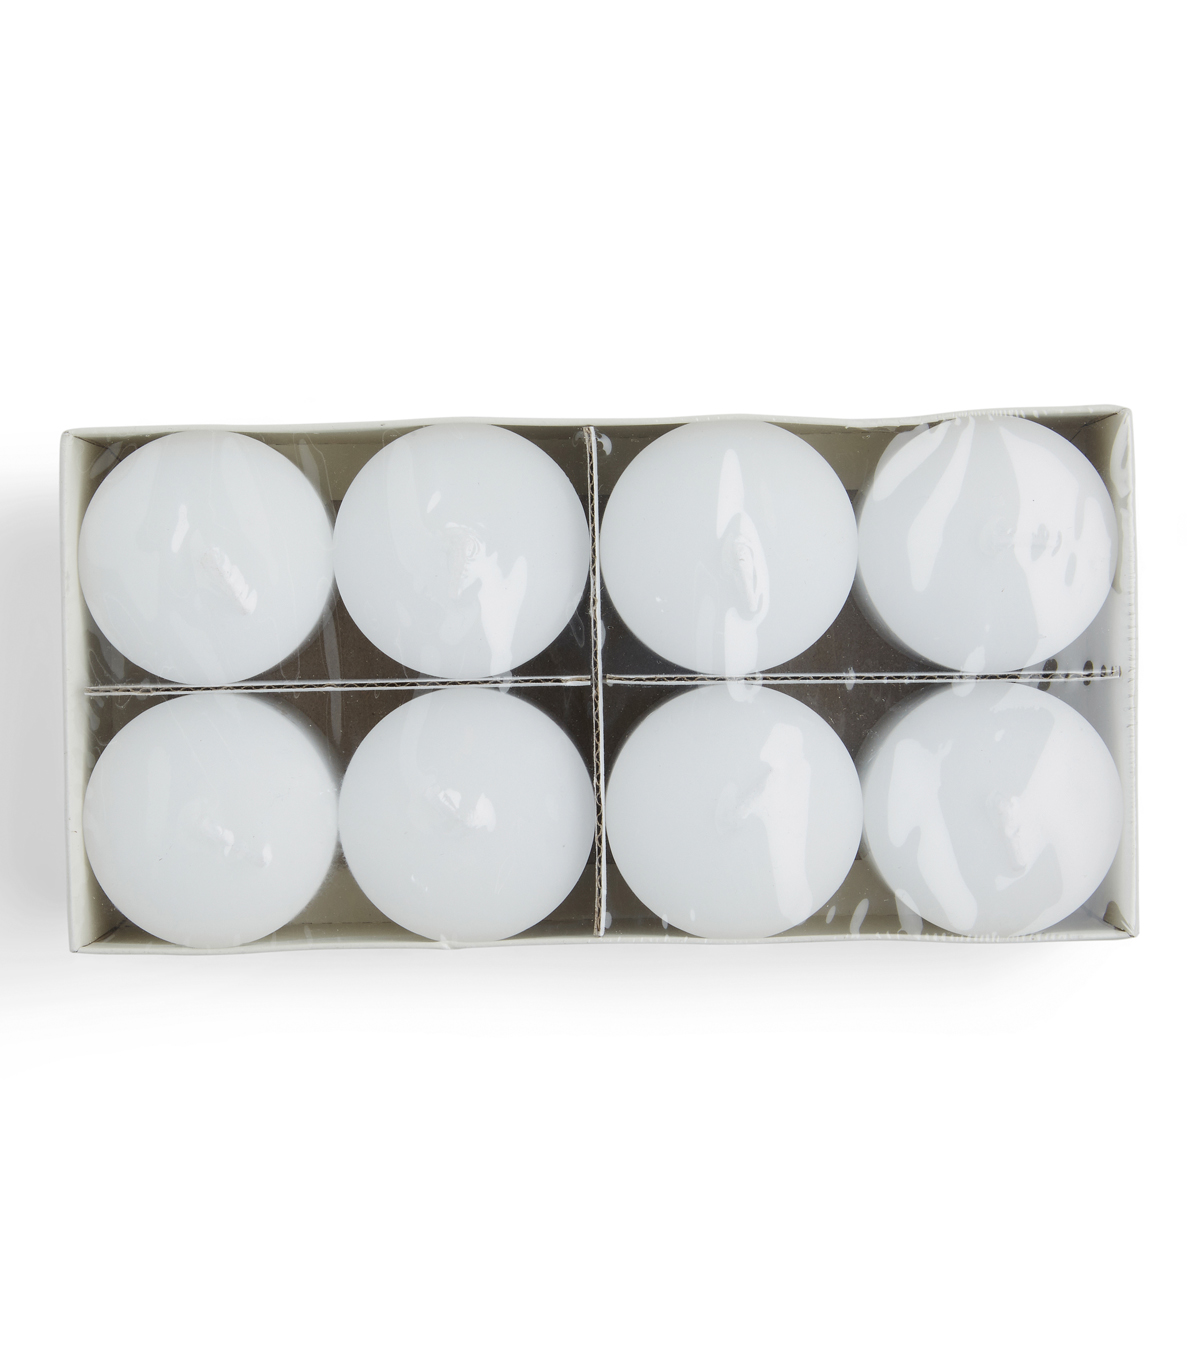 Hudson 43™ Candle & Light Collection 8pk 2\u0022 Unscented Pillar Candles-White